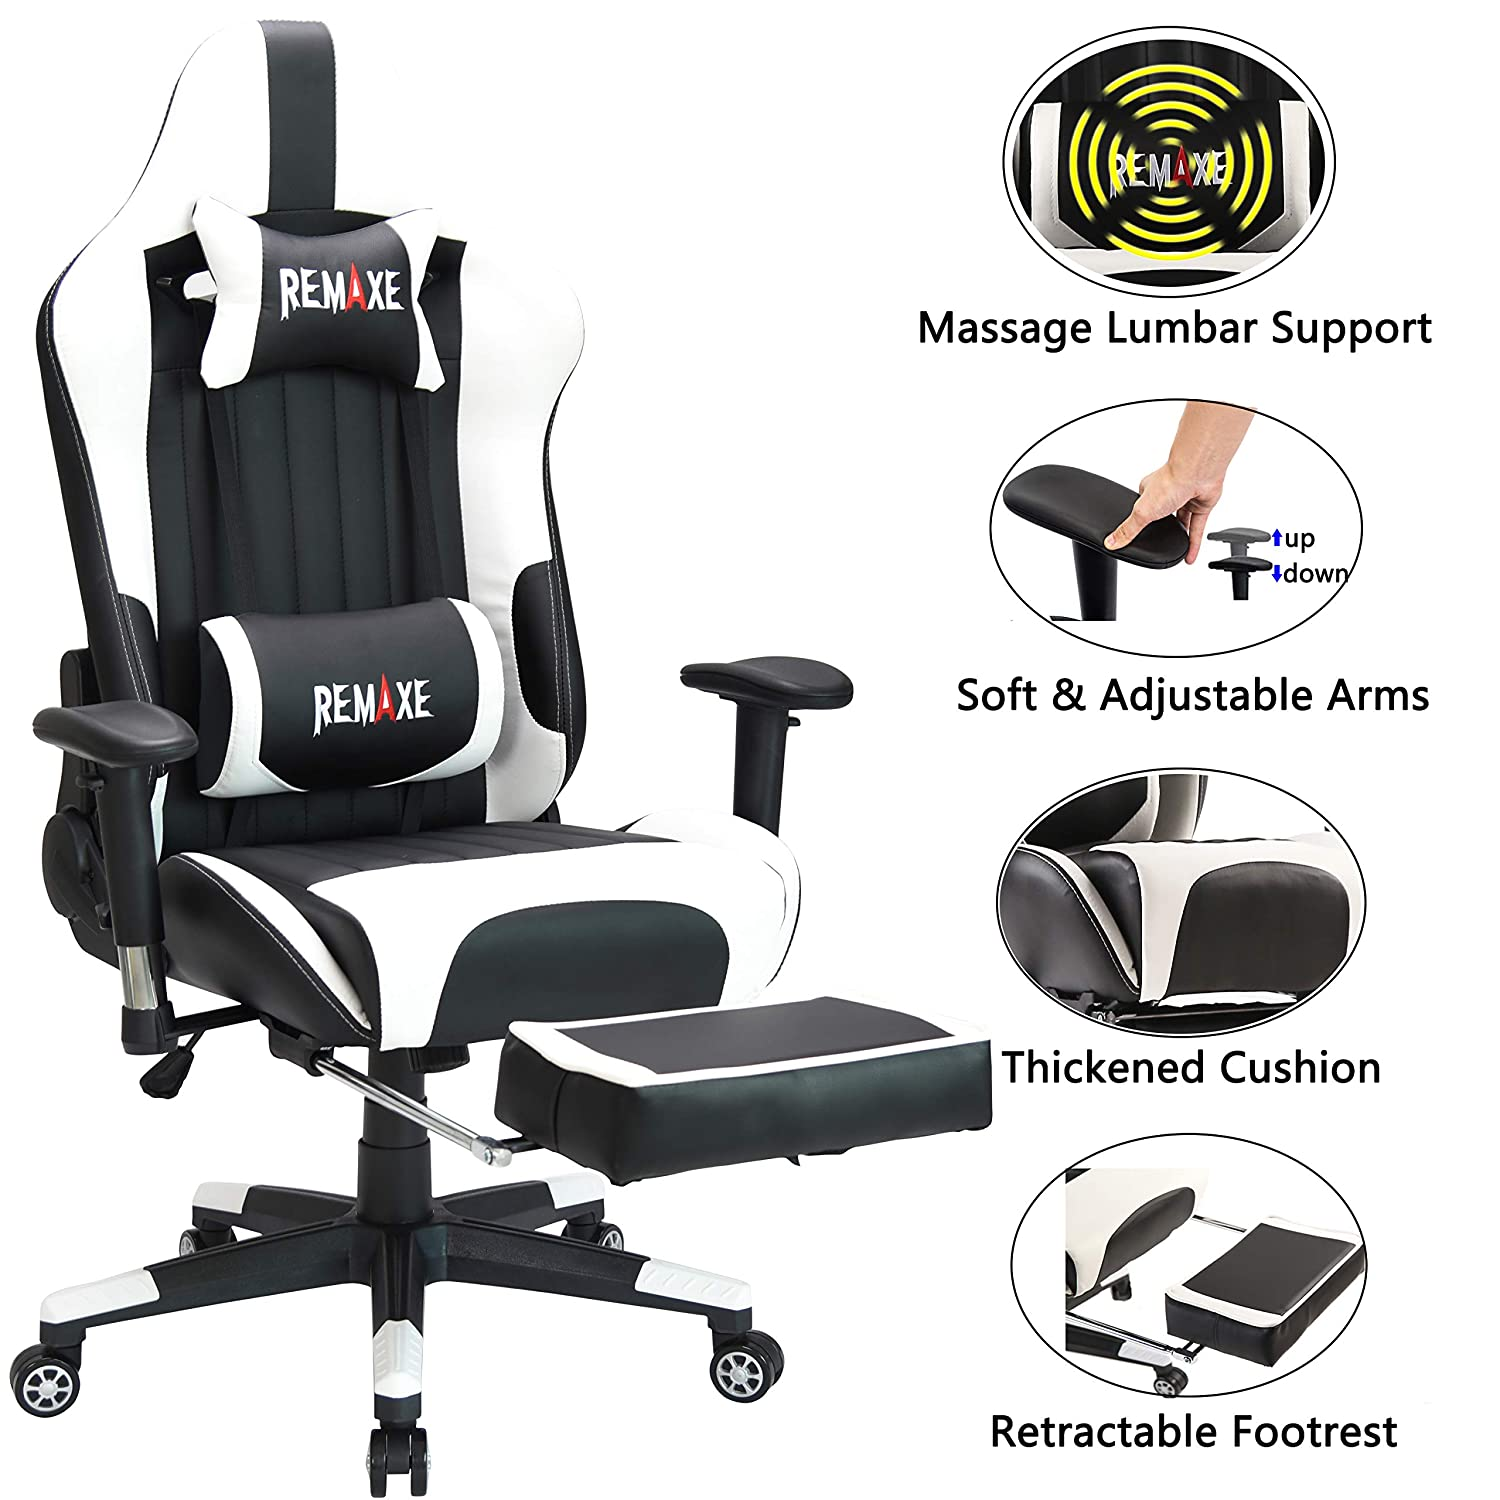 Large Size Gaming Chair High-Back PC Racing Chair Headrest Lumbar Massager Cushion Ergonomic Swivel PC Racing Chair with Retractable Footrest,PU Leather Executive Home Computer Chair Black White